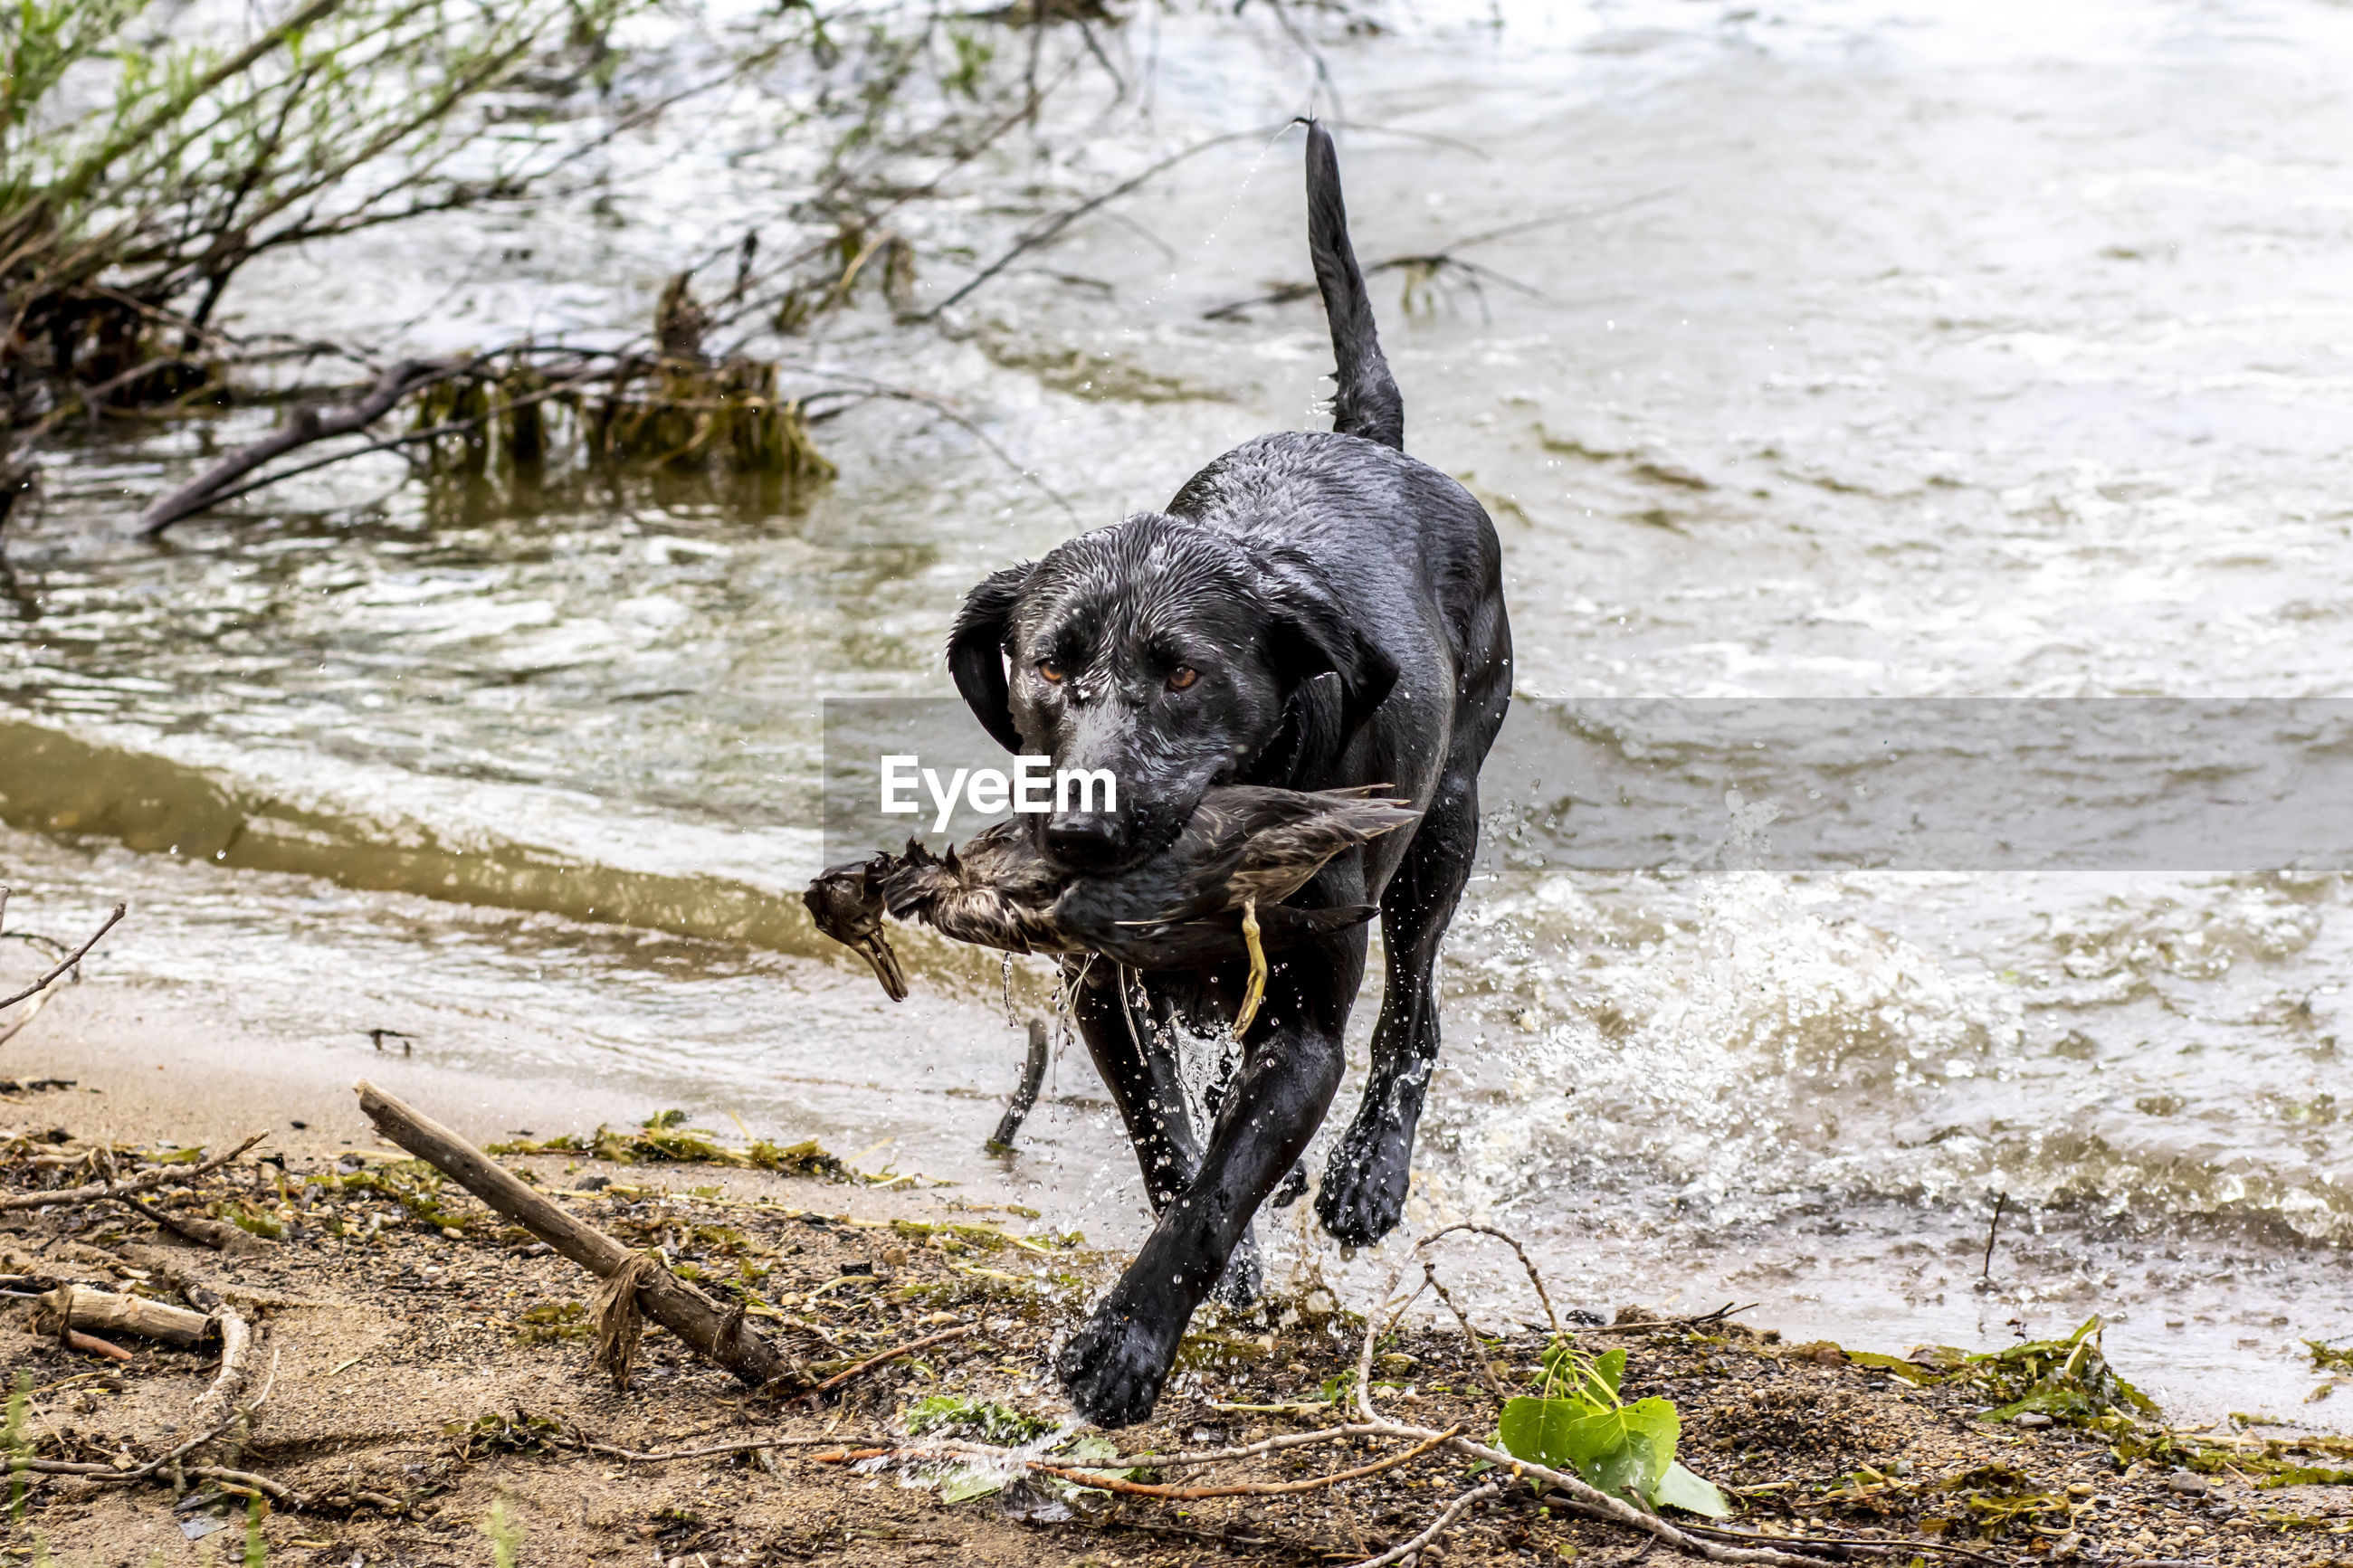 BLACK DOG DRINKING WATER IN A LAKE